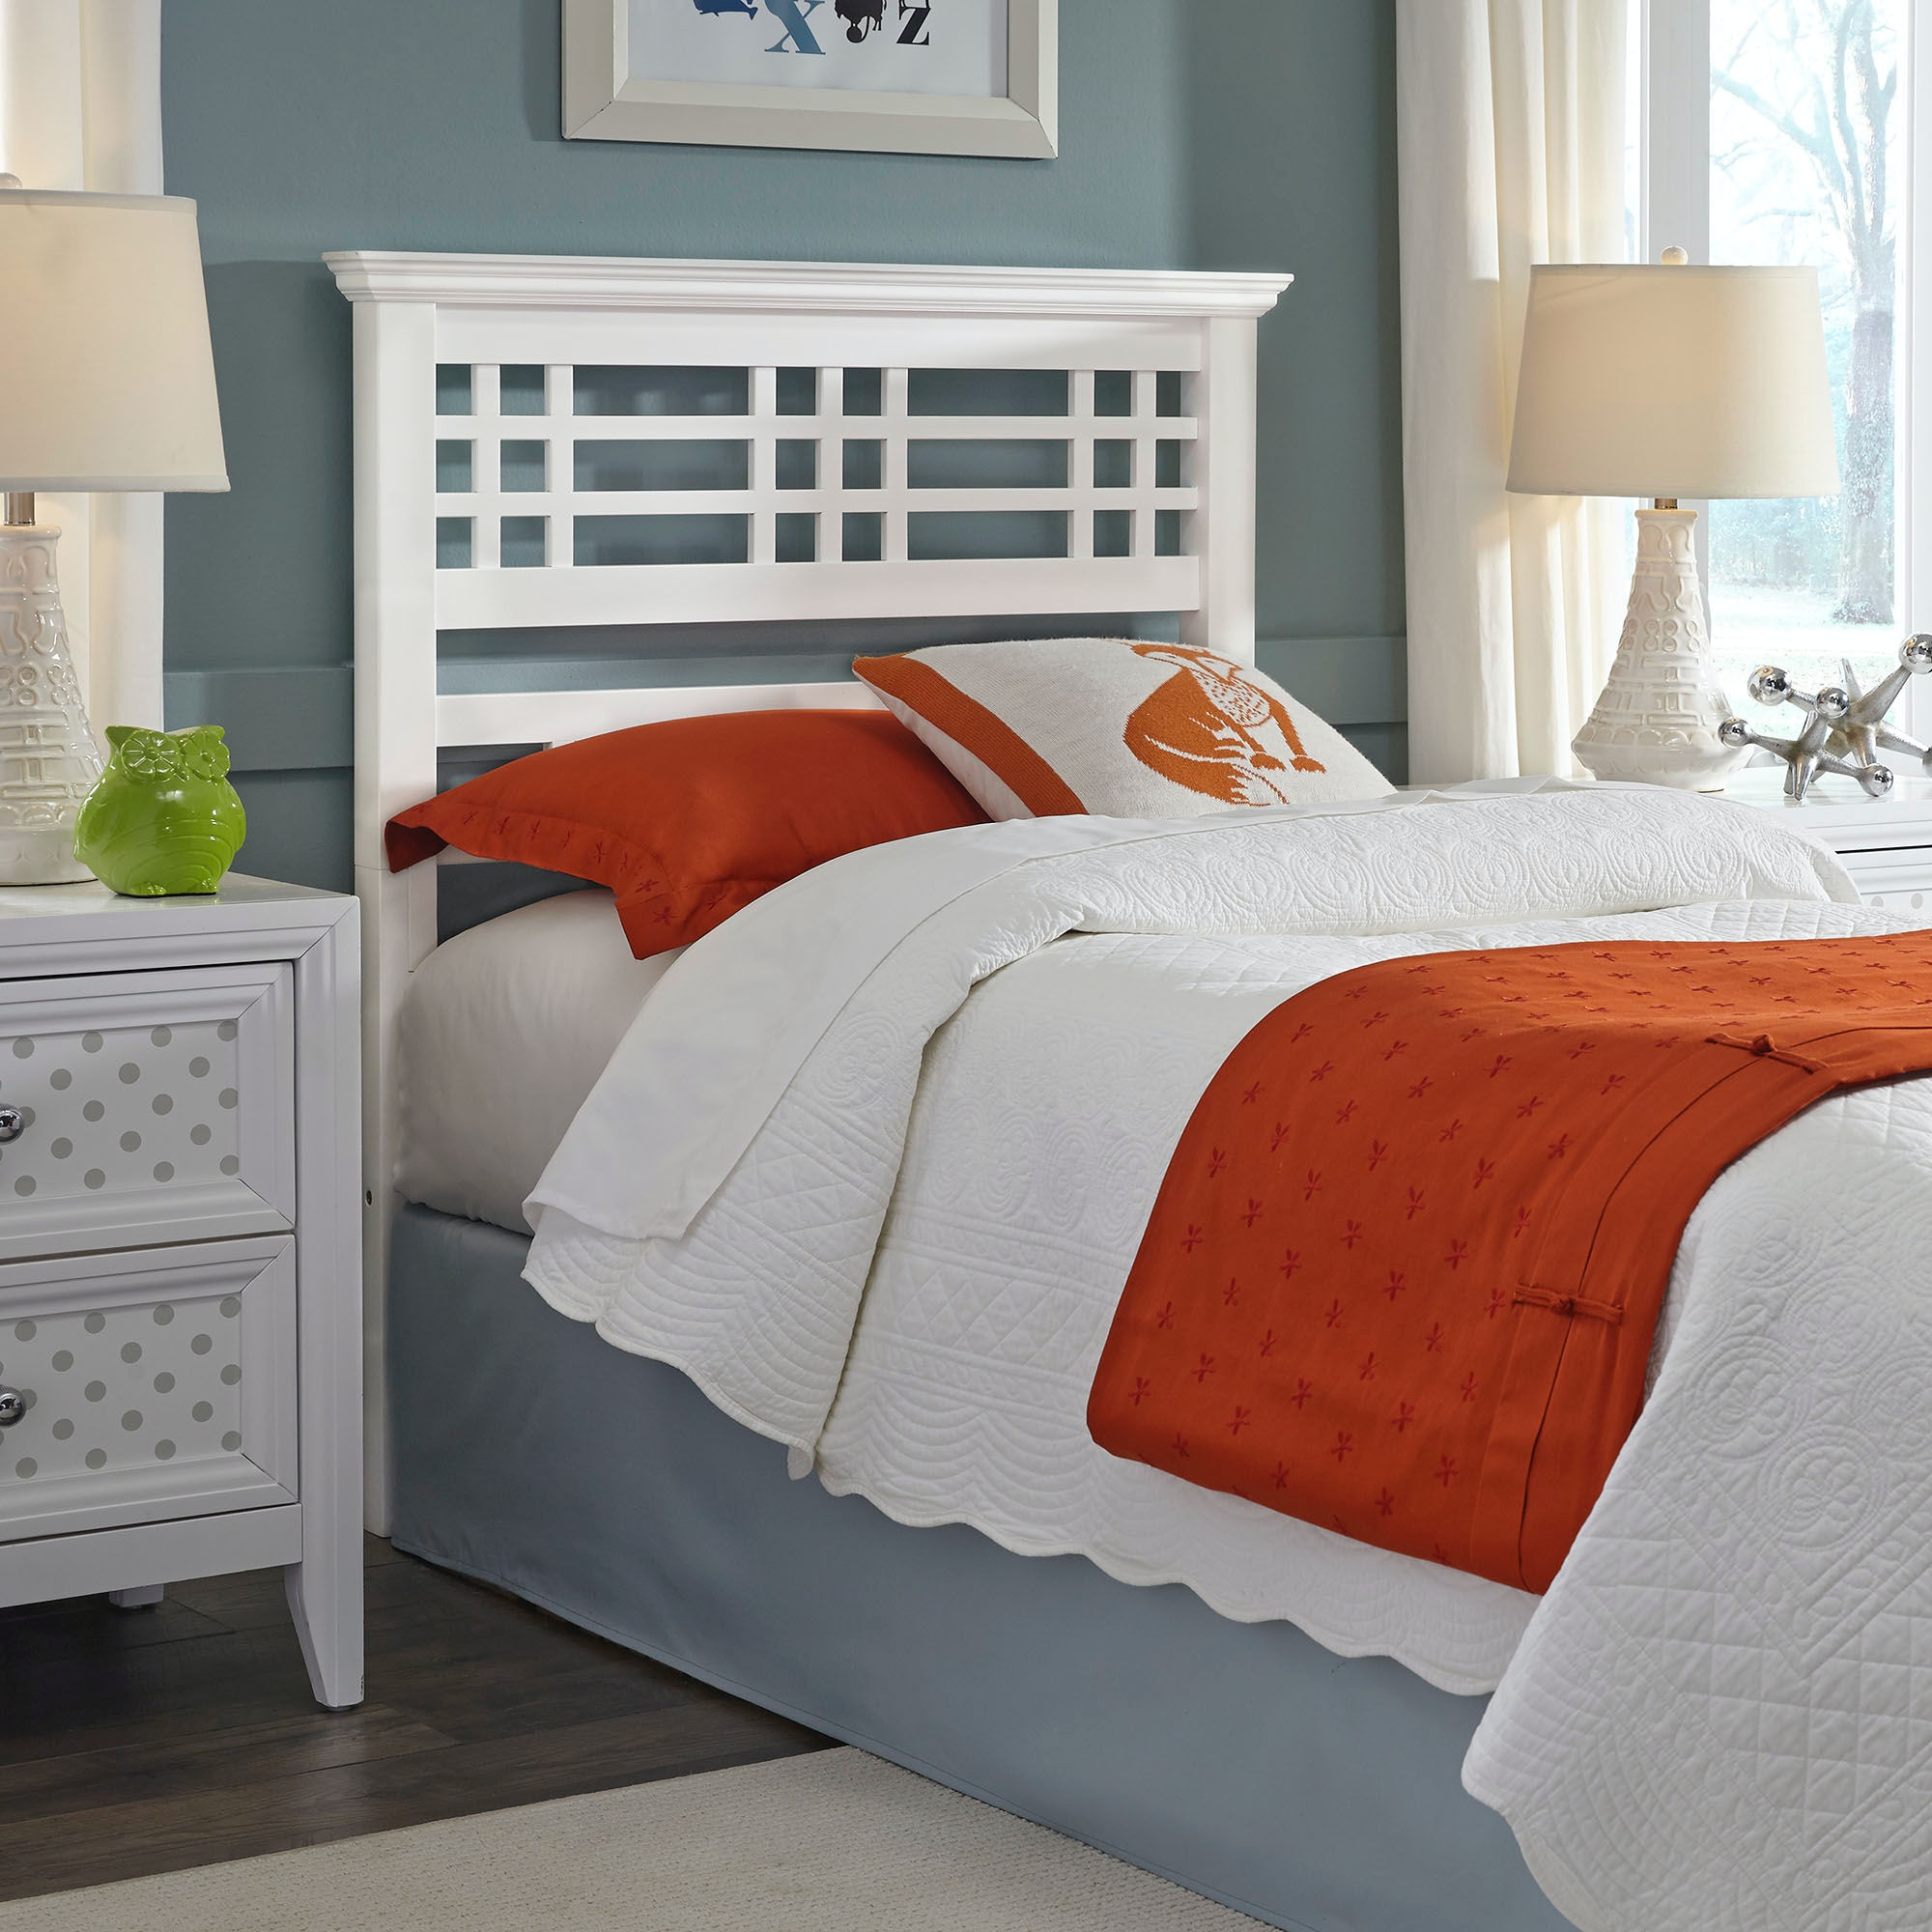 Fashion Bed Group Avery Wooden Headboard With Mission Style Design, Cottage  White Finish, Twin